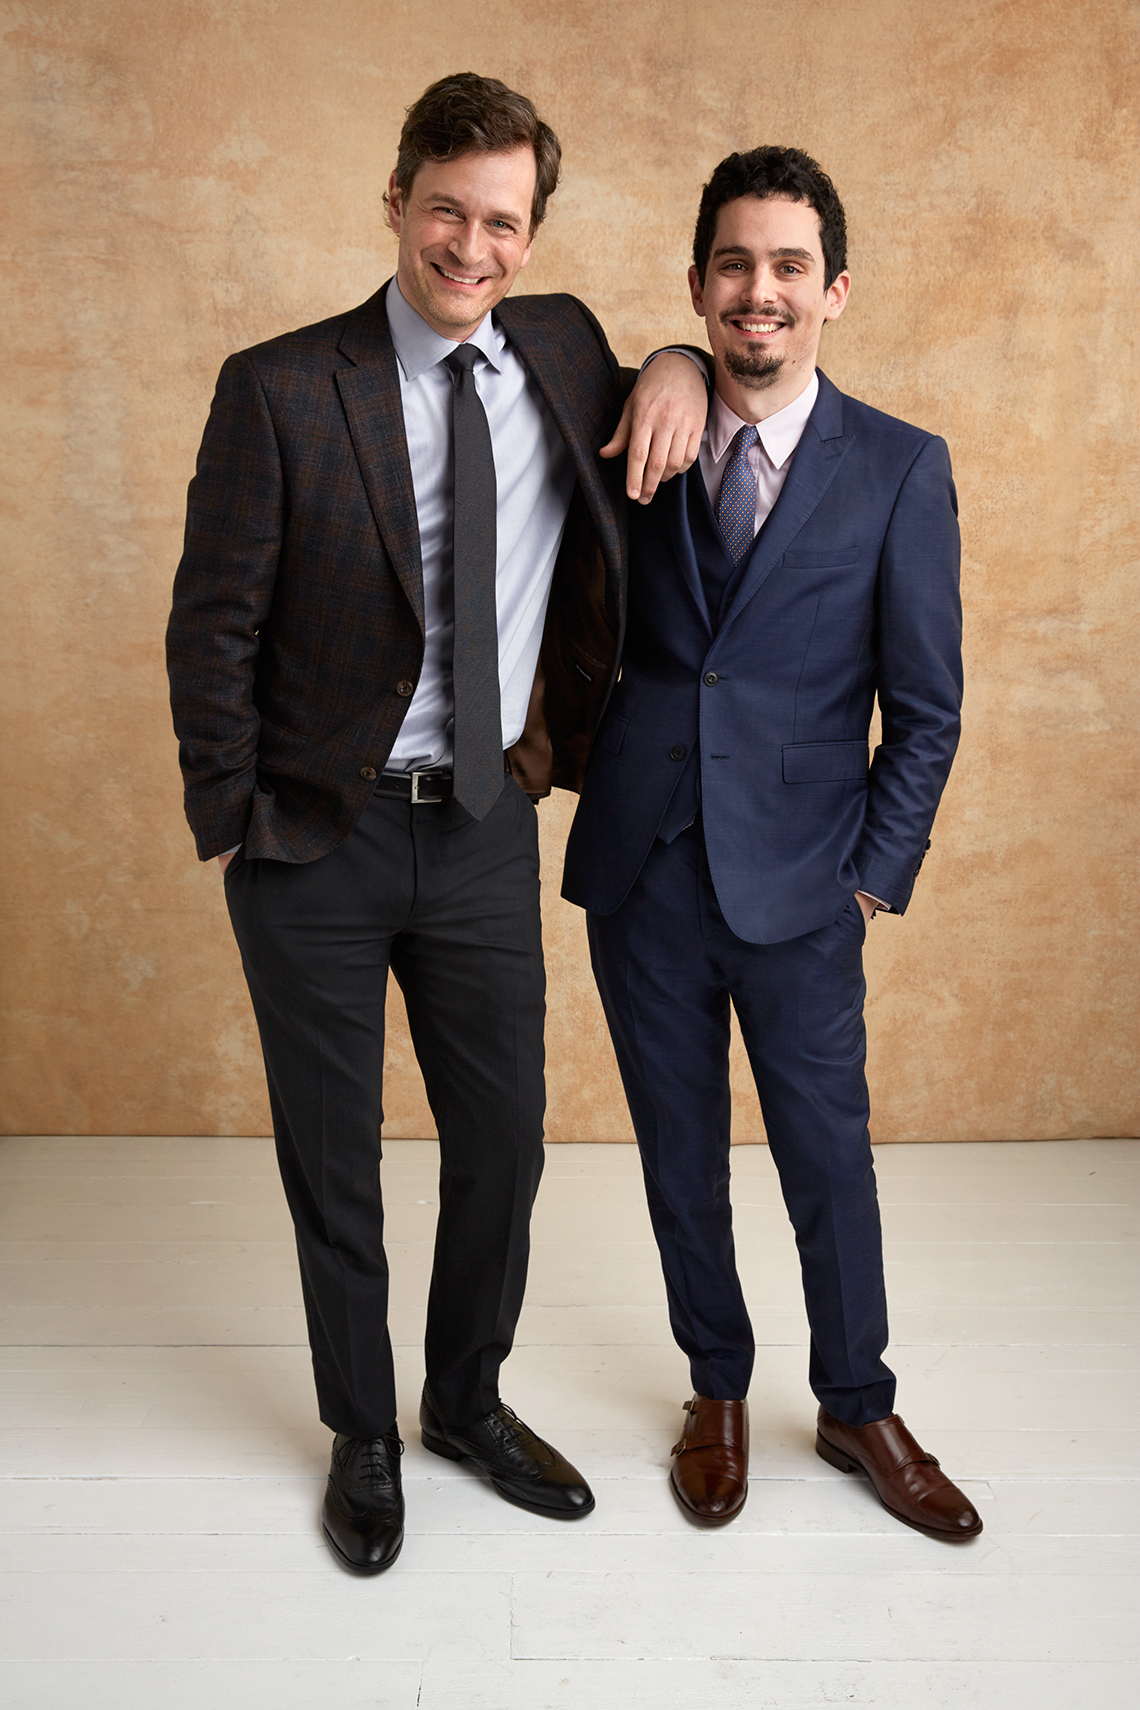 Tom Everett Scott and Damien Chazelle at the 16th Annual AARP The Magazine's Movies for Grownups Awards